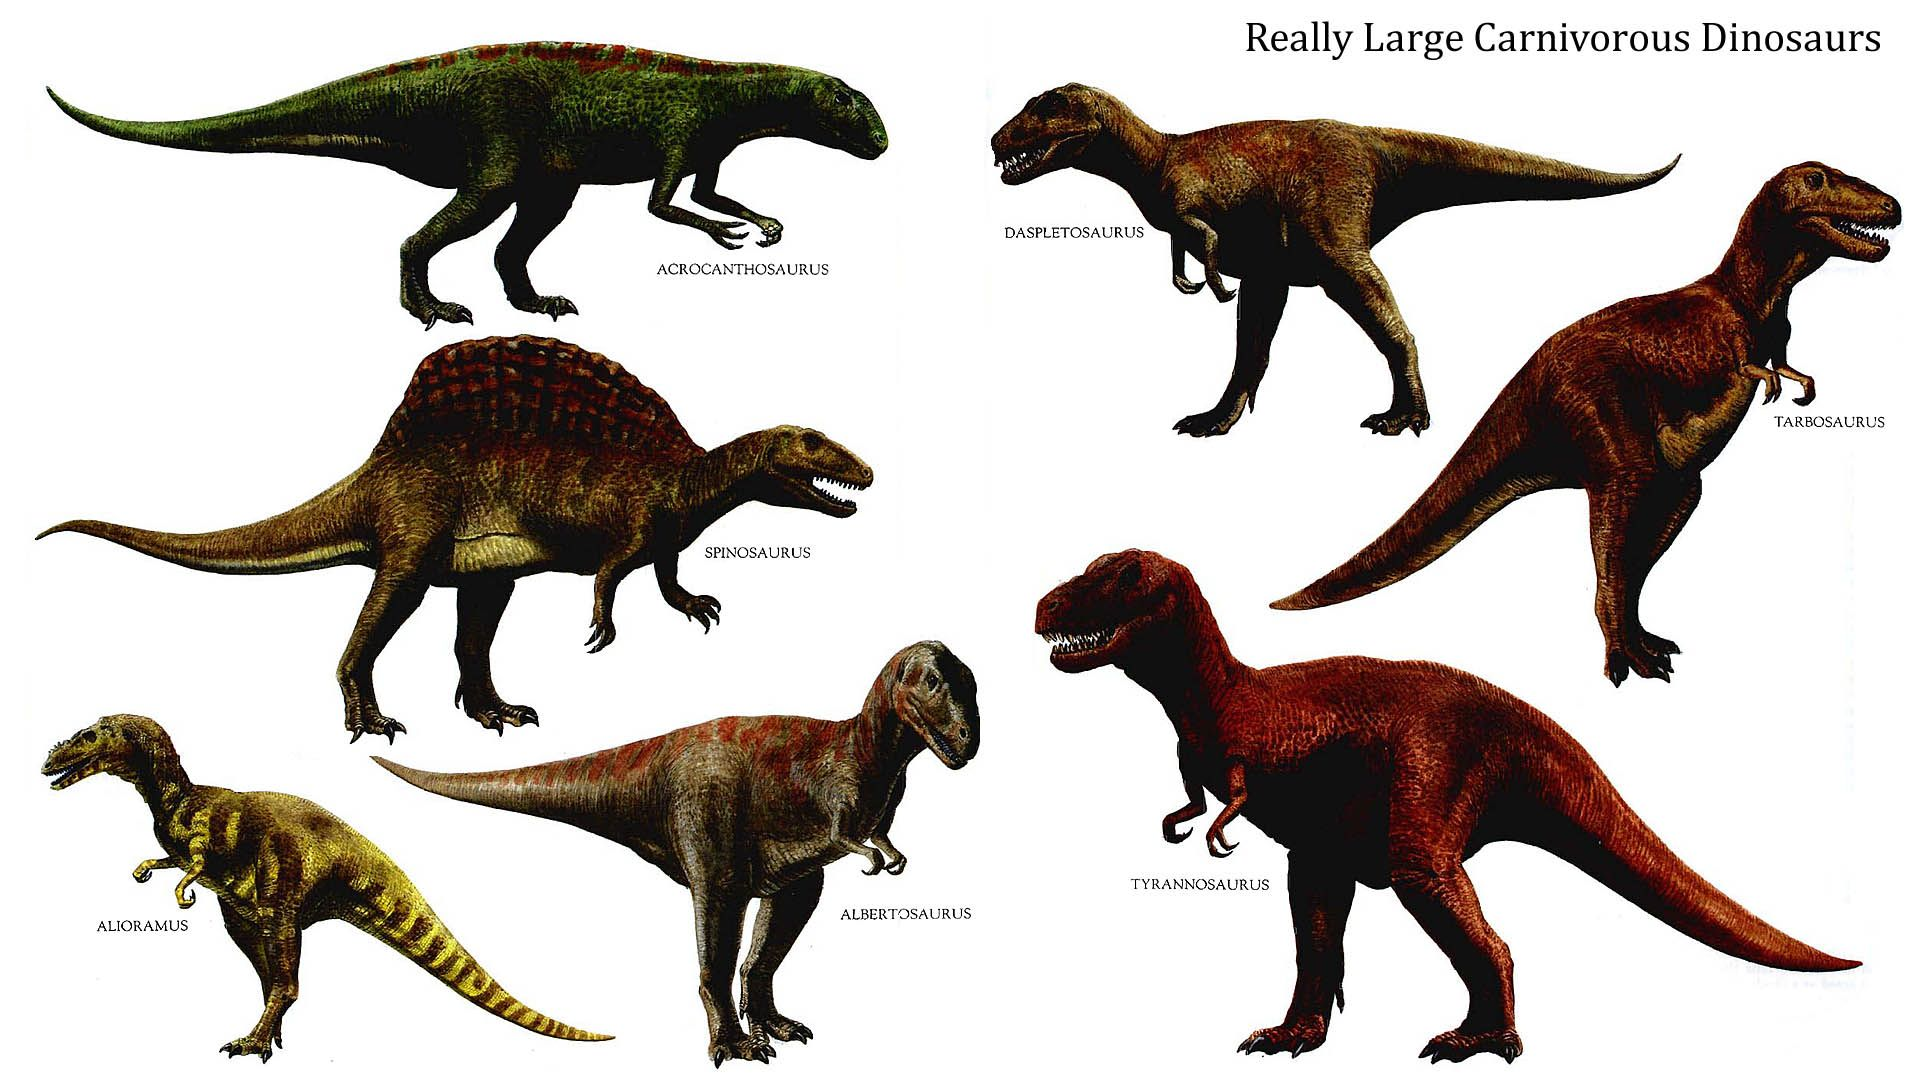 Dinosaurs Images Really Large Carnivorous Dinosaurs Hd Wallpaper And Background Photos 39775255 Dinosaur Background Dinosaur Pictures Dinosaur Wallpaper